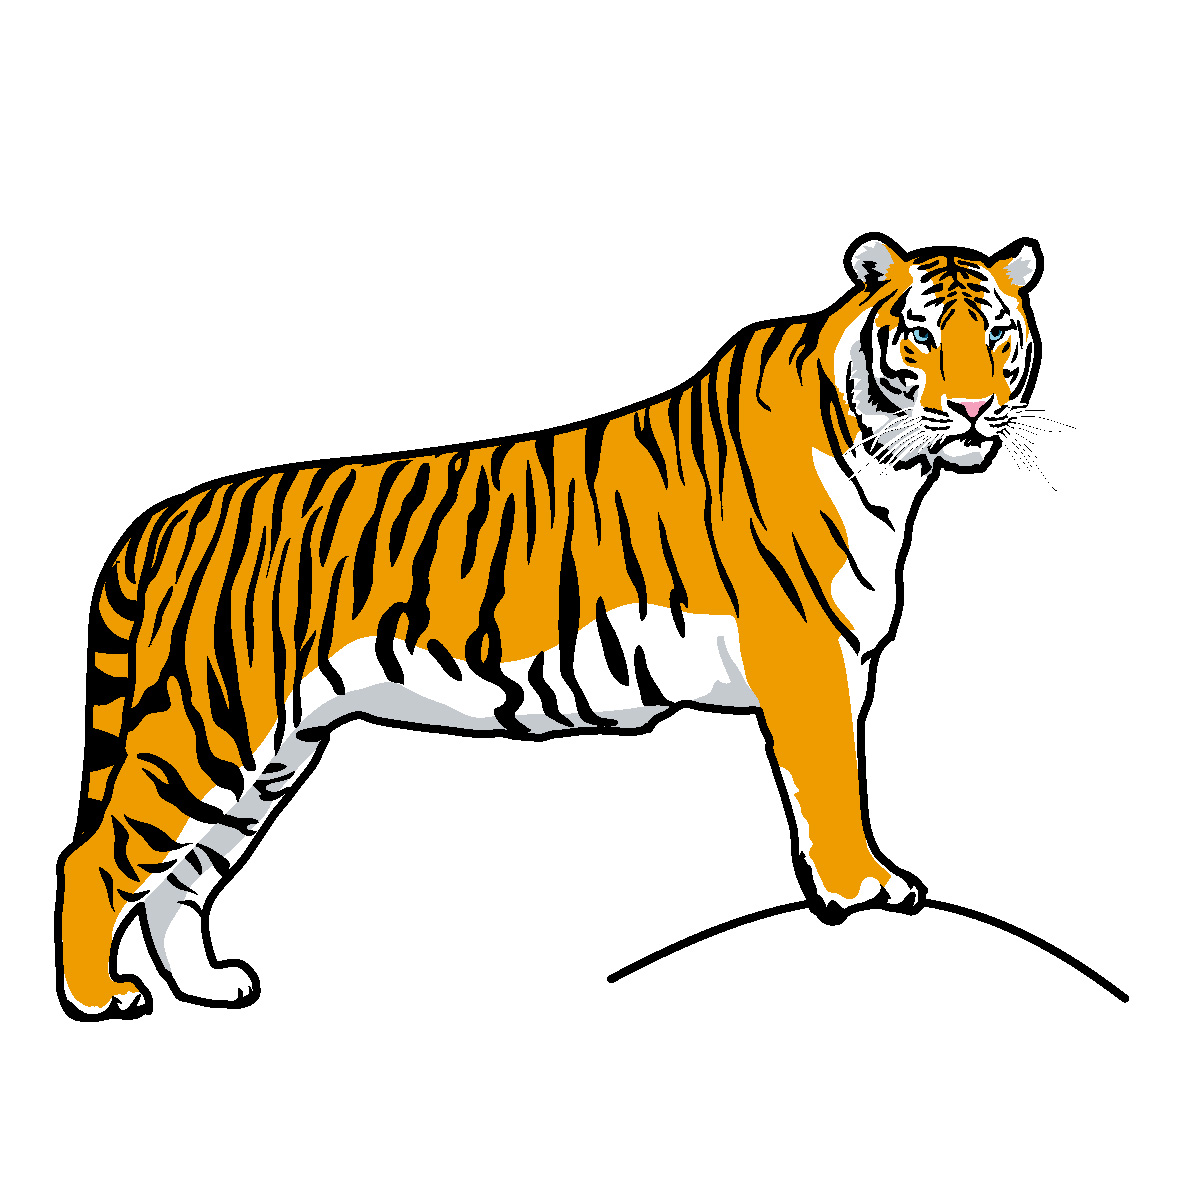 running tiger clipart black and white-running tiger clipart black and white-1